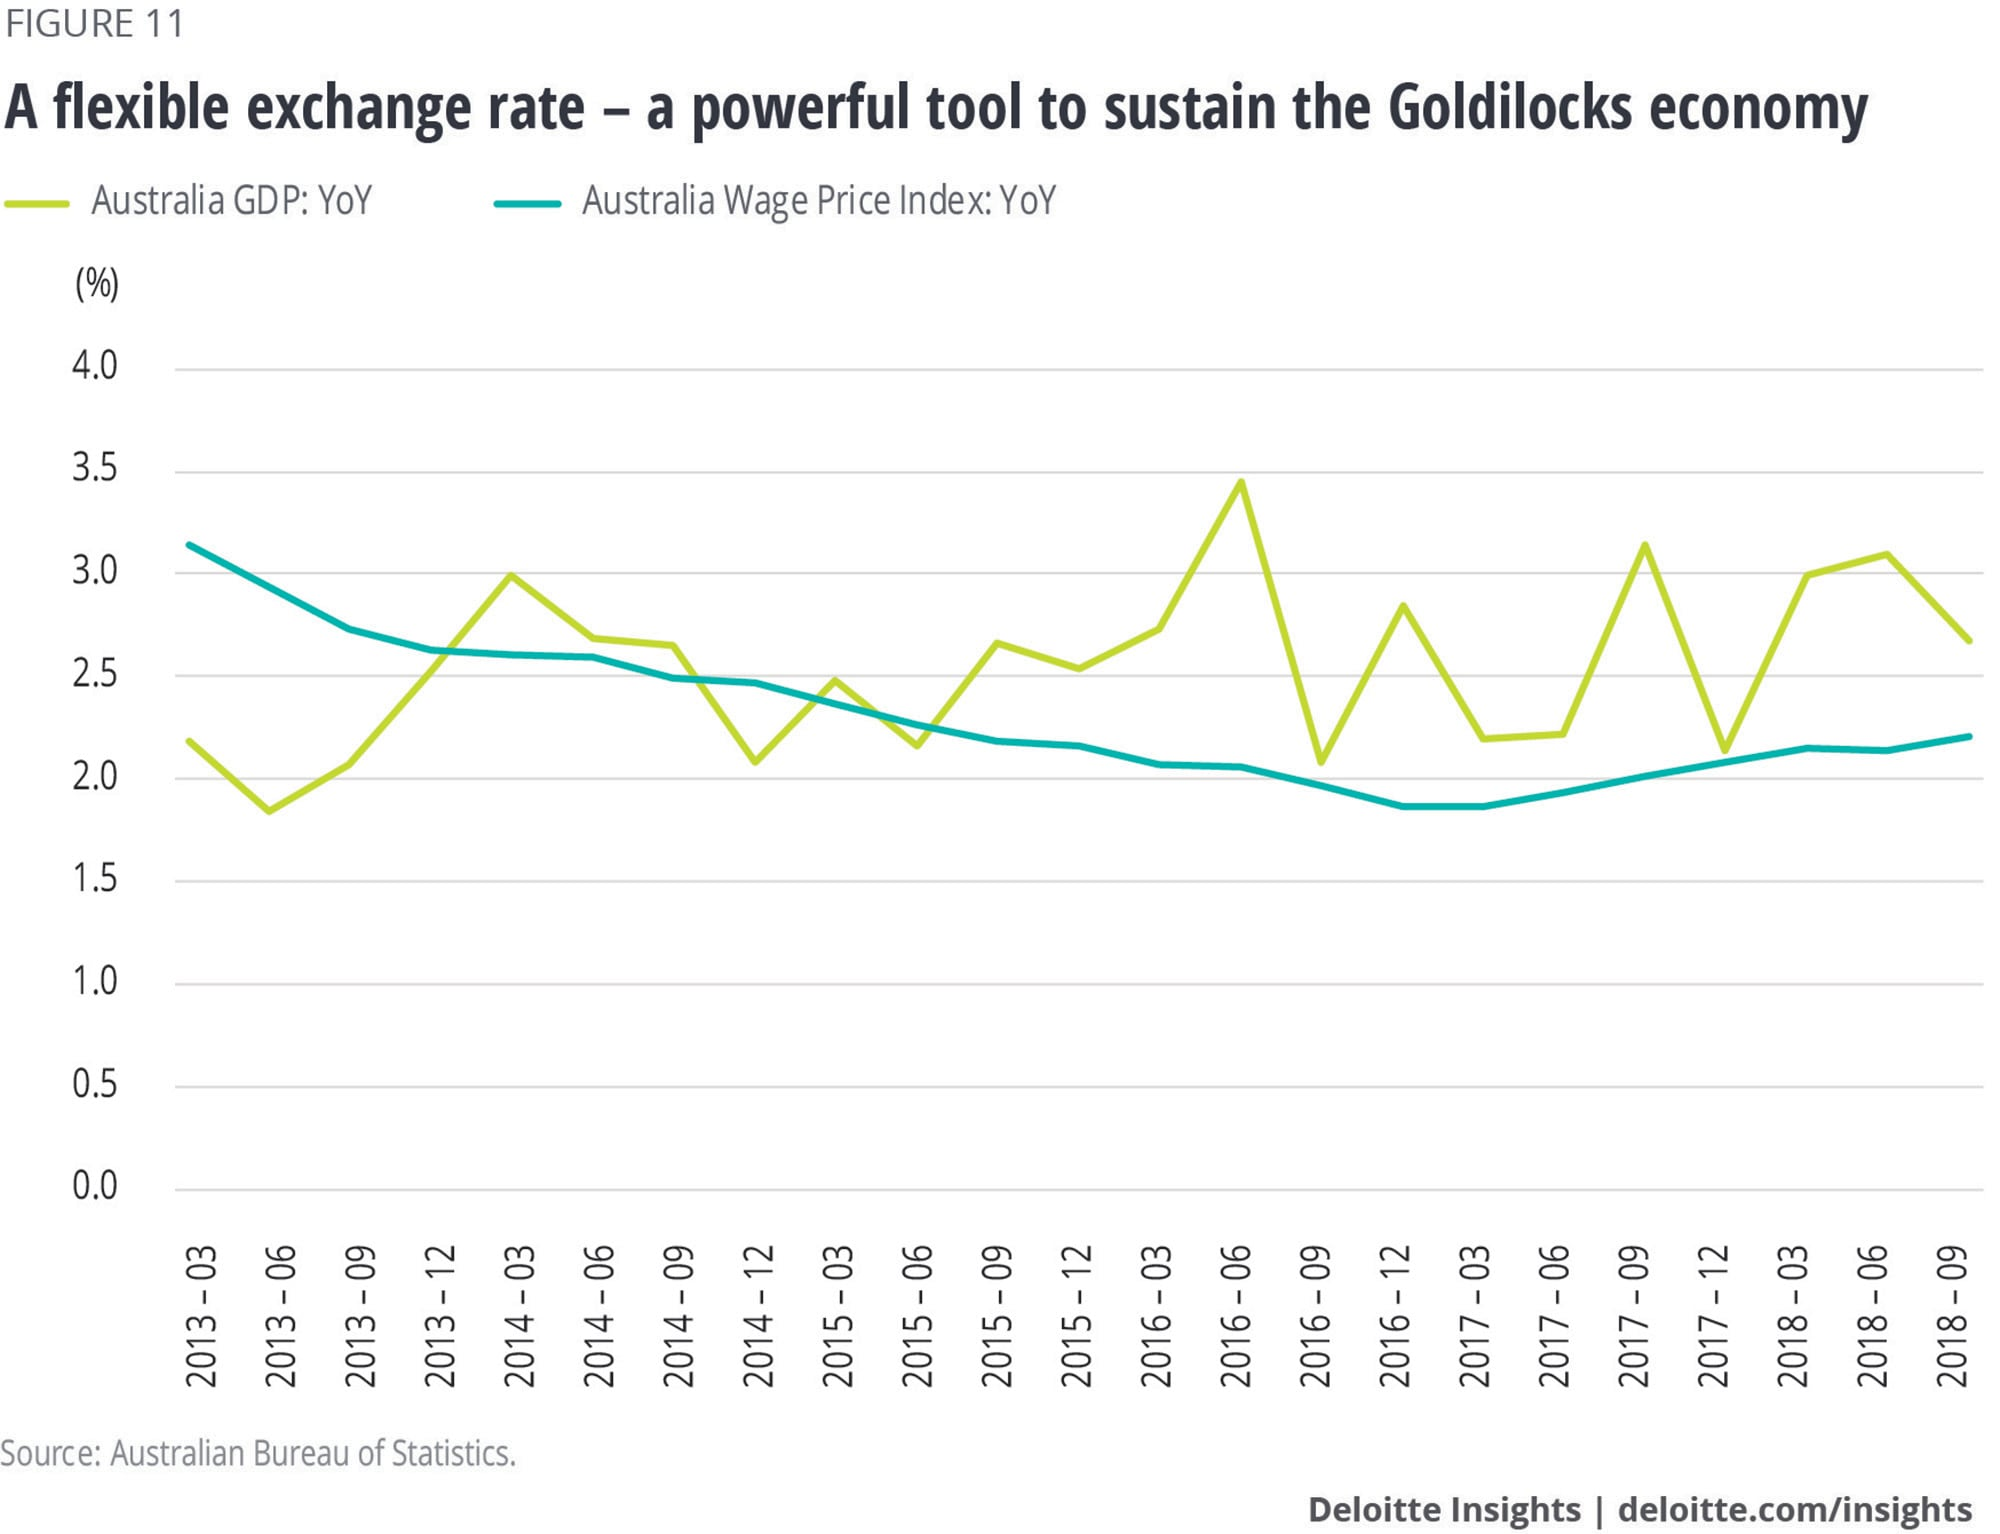 A flexible exchange rate – a powerful tool to sustain the Goldilocks economy